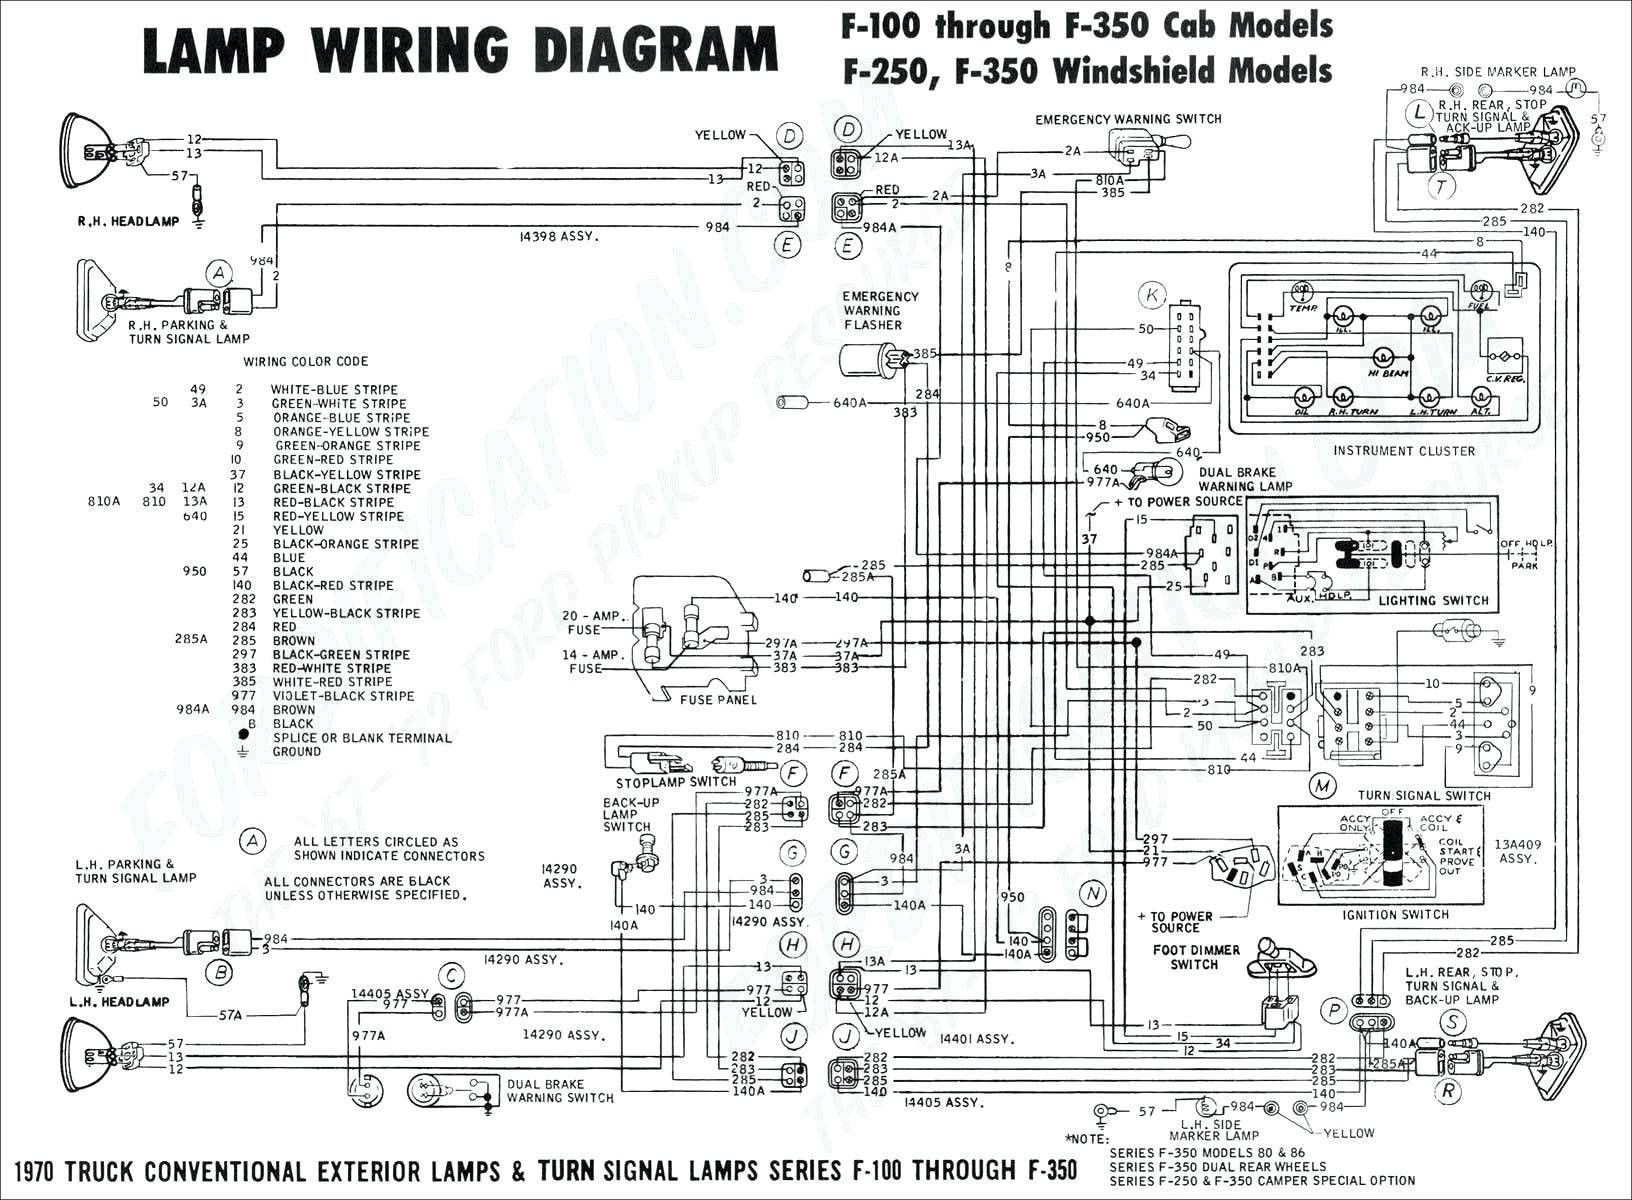 Pin by Bridget Webster on Diagram Chart | Electrical wiring ...  Jetta Interior Light Wiring Diagram on 2004 jetta trouble shooting, 2004 jetta engine, vw jetta 1.8 engine diagram, 2004 jetta transmission, 2002 vw jetta relay diagram, 2005 jetta wiring diagram, 2003 jetta wiring diagram, 2004 jetta oil pump, 2004 jetta fuel pump, 2004 jetta timing, 2001 jetta wiring diagram, 1999 volkswagen jetta engine diagram, 2004 jetta ignition switch, 2004 jetta manual, 2004 jetta aftermarket radio, 2002 jetta wiring diagram, 2002 volkswagen jetta engine diagram, 2006 jetta wiring diagram, volkswagen stereo wiring diagram, 2004 jetta water pump,